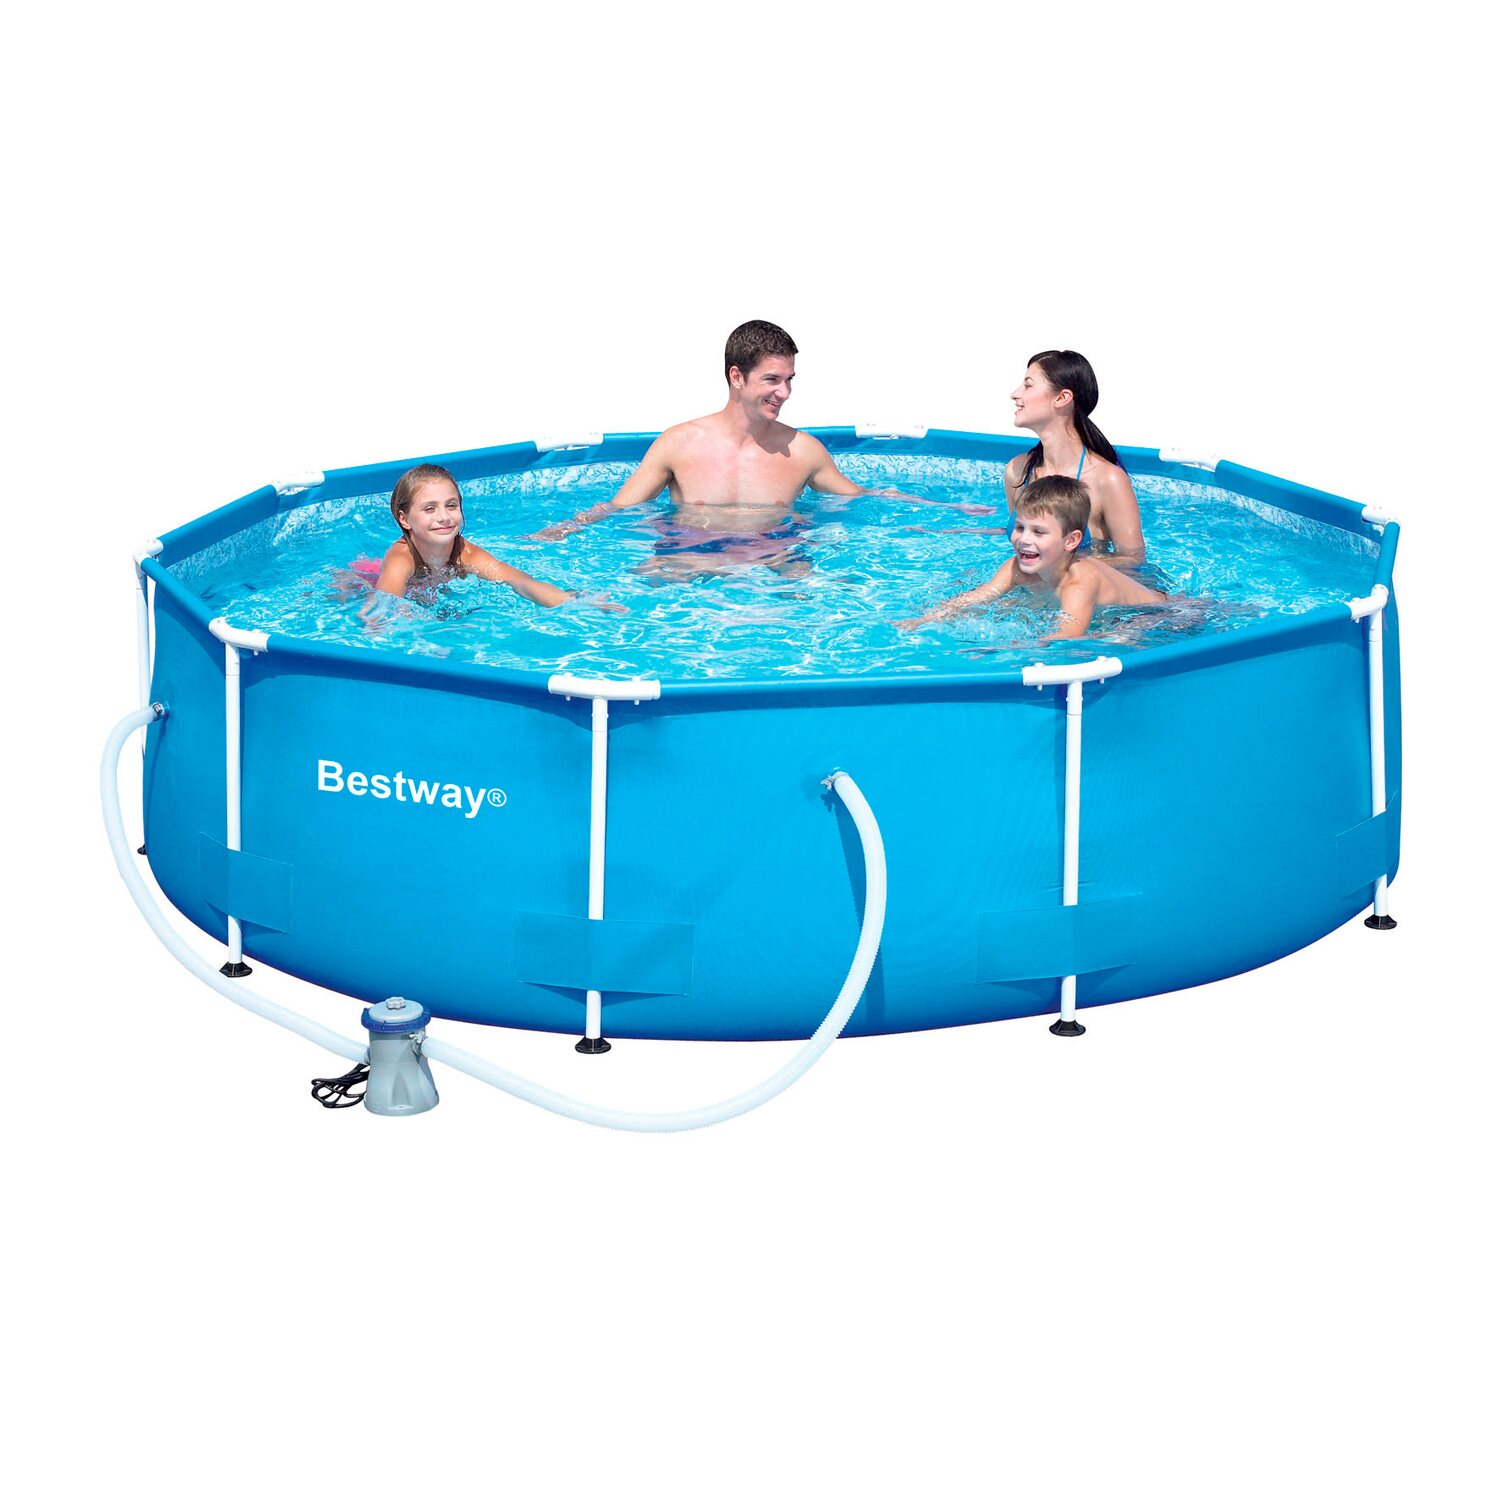 Bestway stahlrahmen swimming pool set 305 cm x 76 cm for Pool staubsauger obi